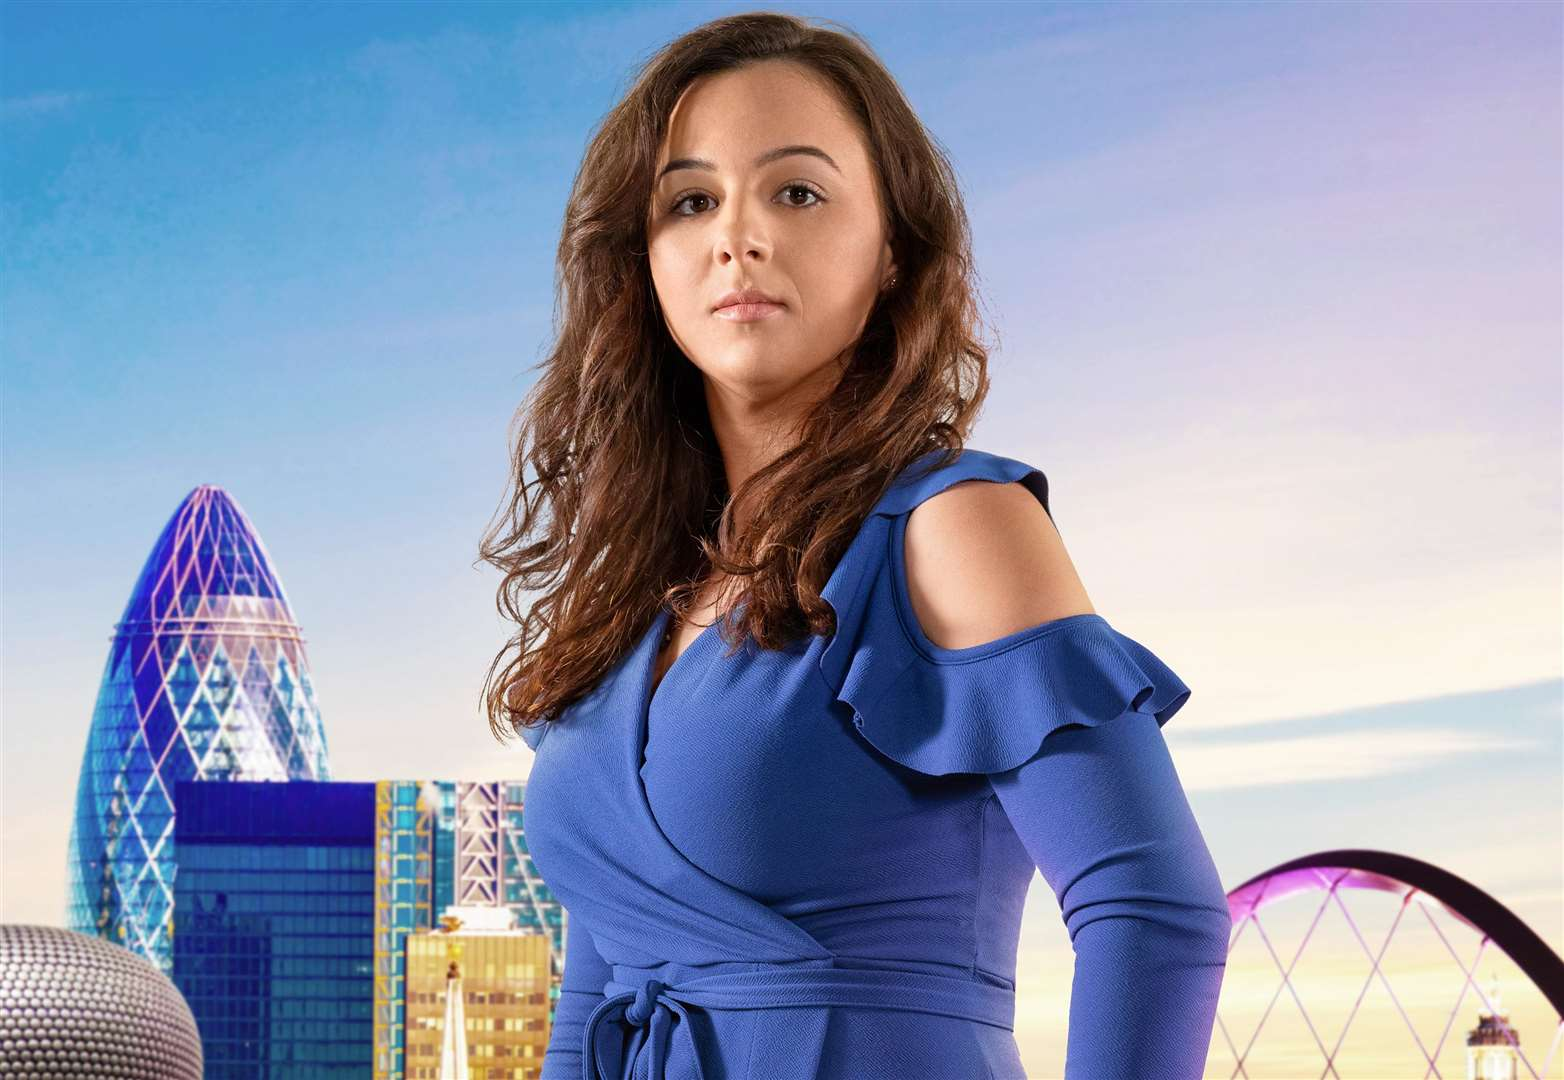 Khadija comes back fighting as her team win urban gardening task on BBC's The Apprentice